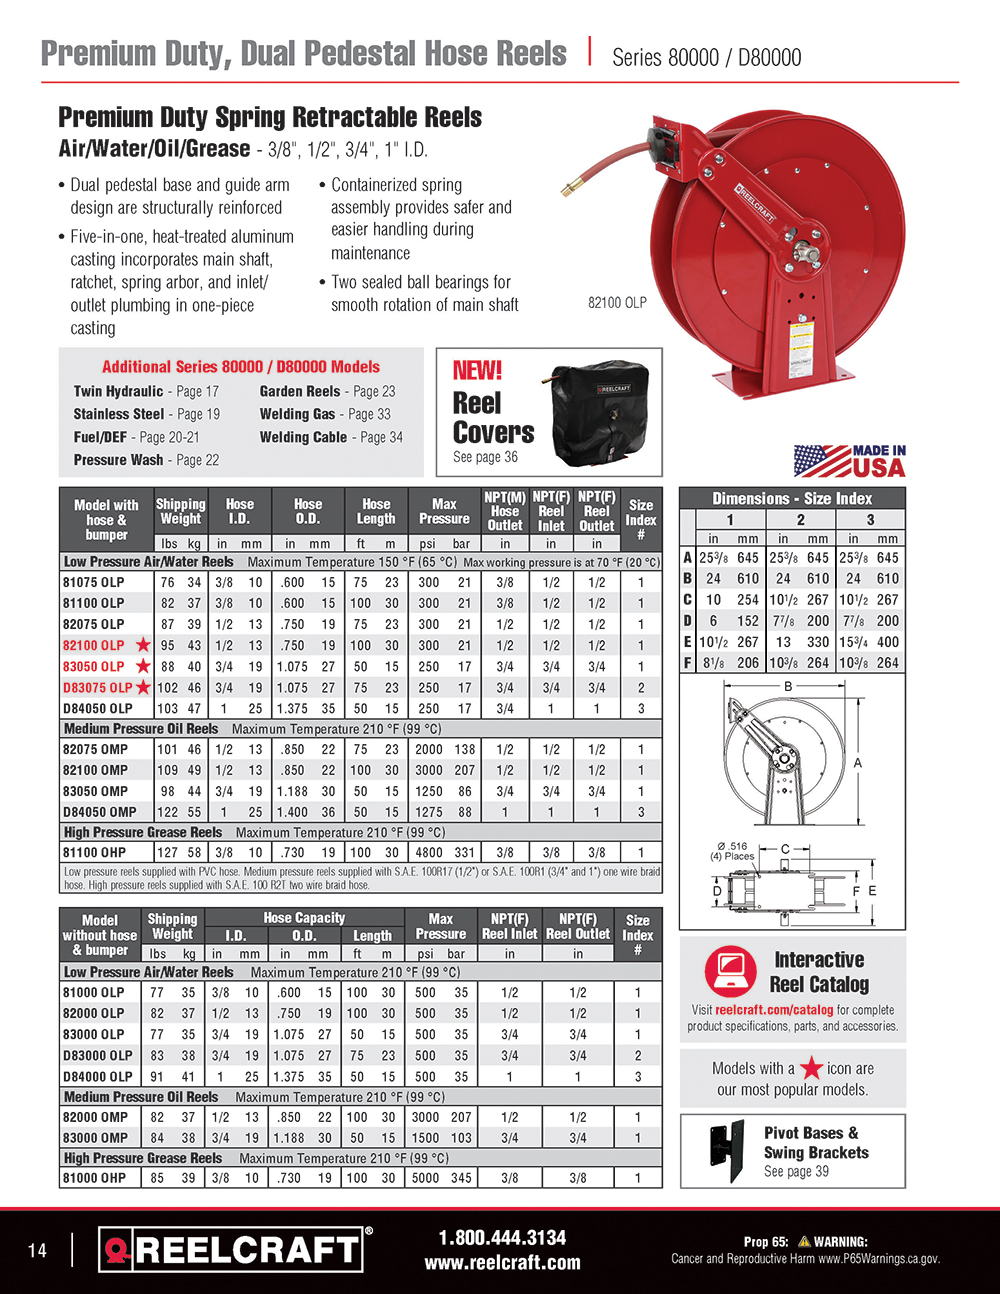 Reelcraft Catalog Page 14 - Series 80000 Hose Reels